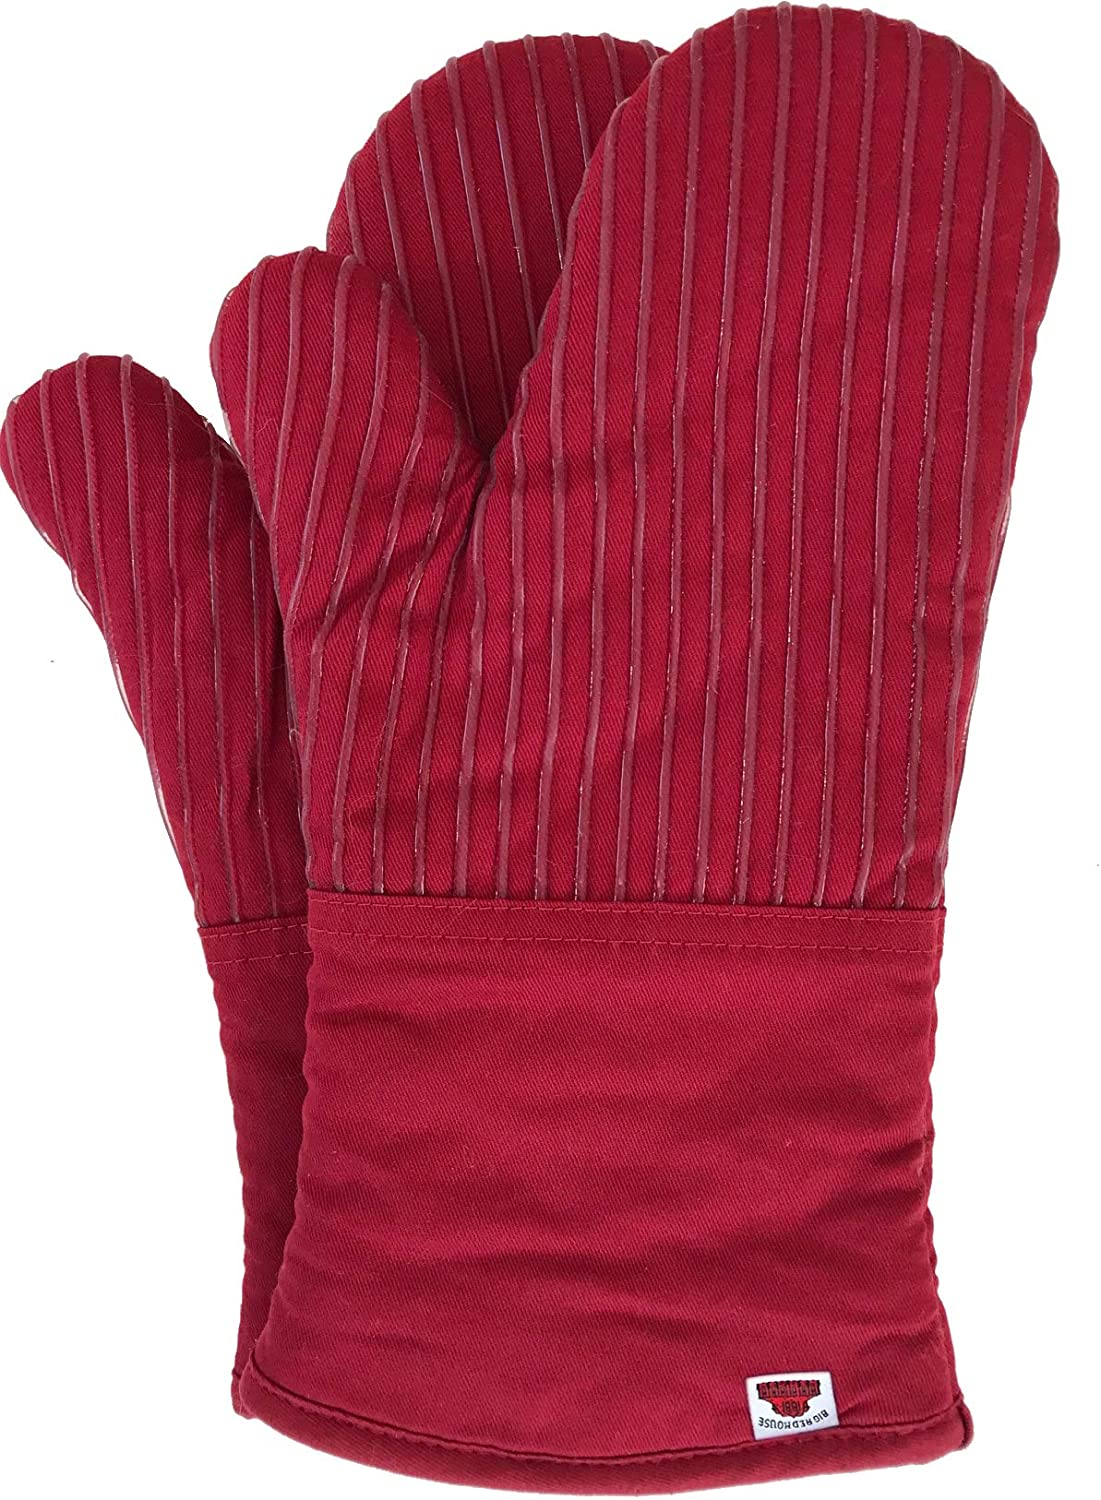 Oven Mitts, with The Heat Resistance of Silicone and Flexibility of Cotton